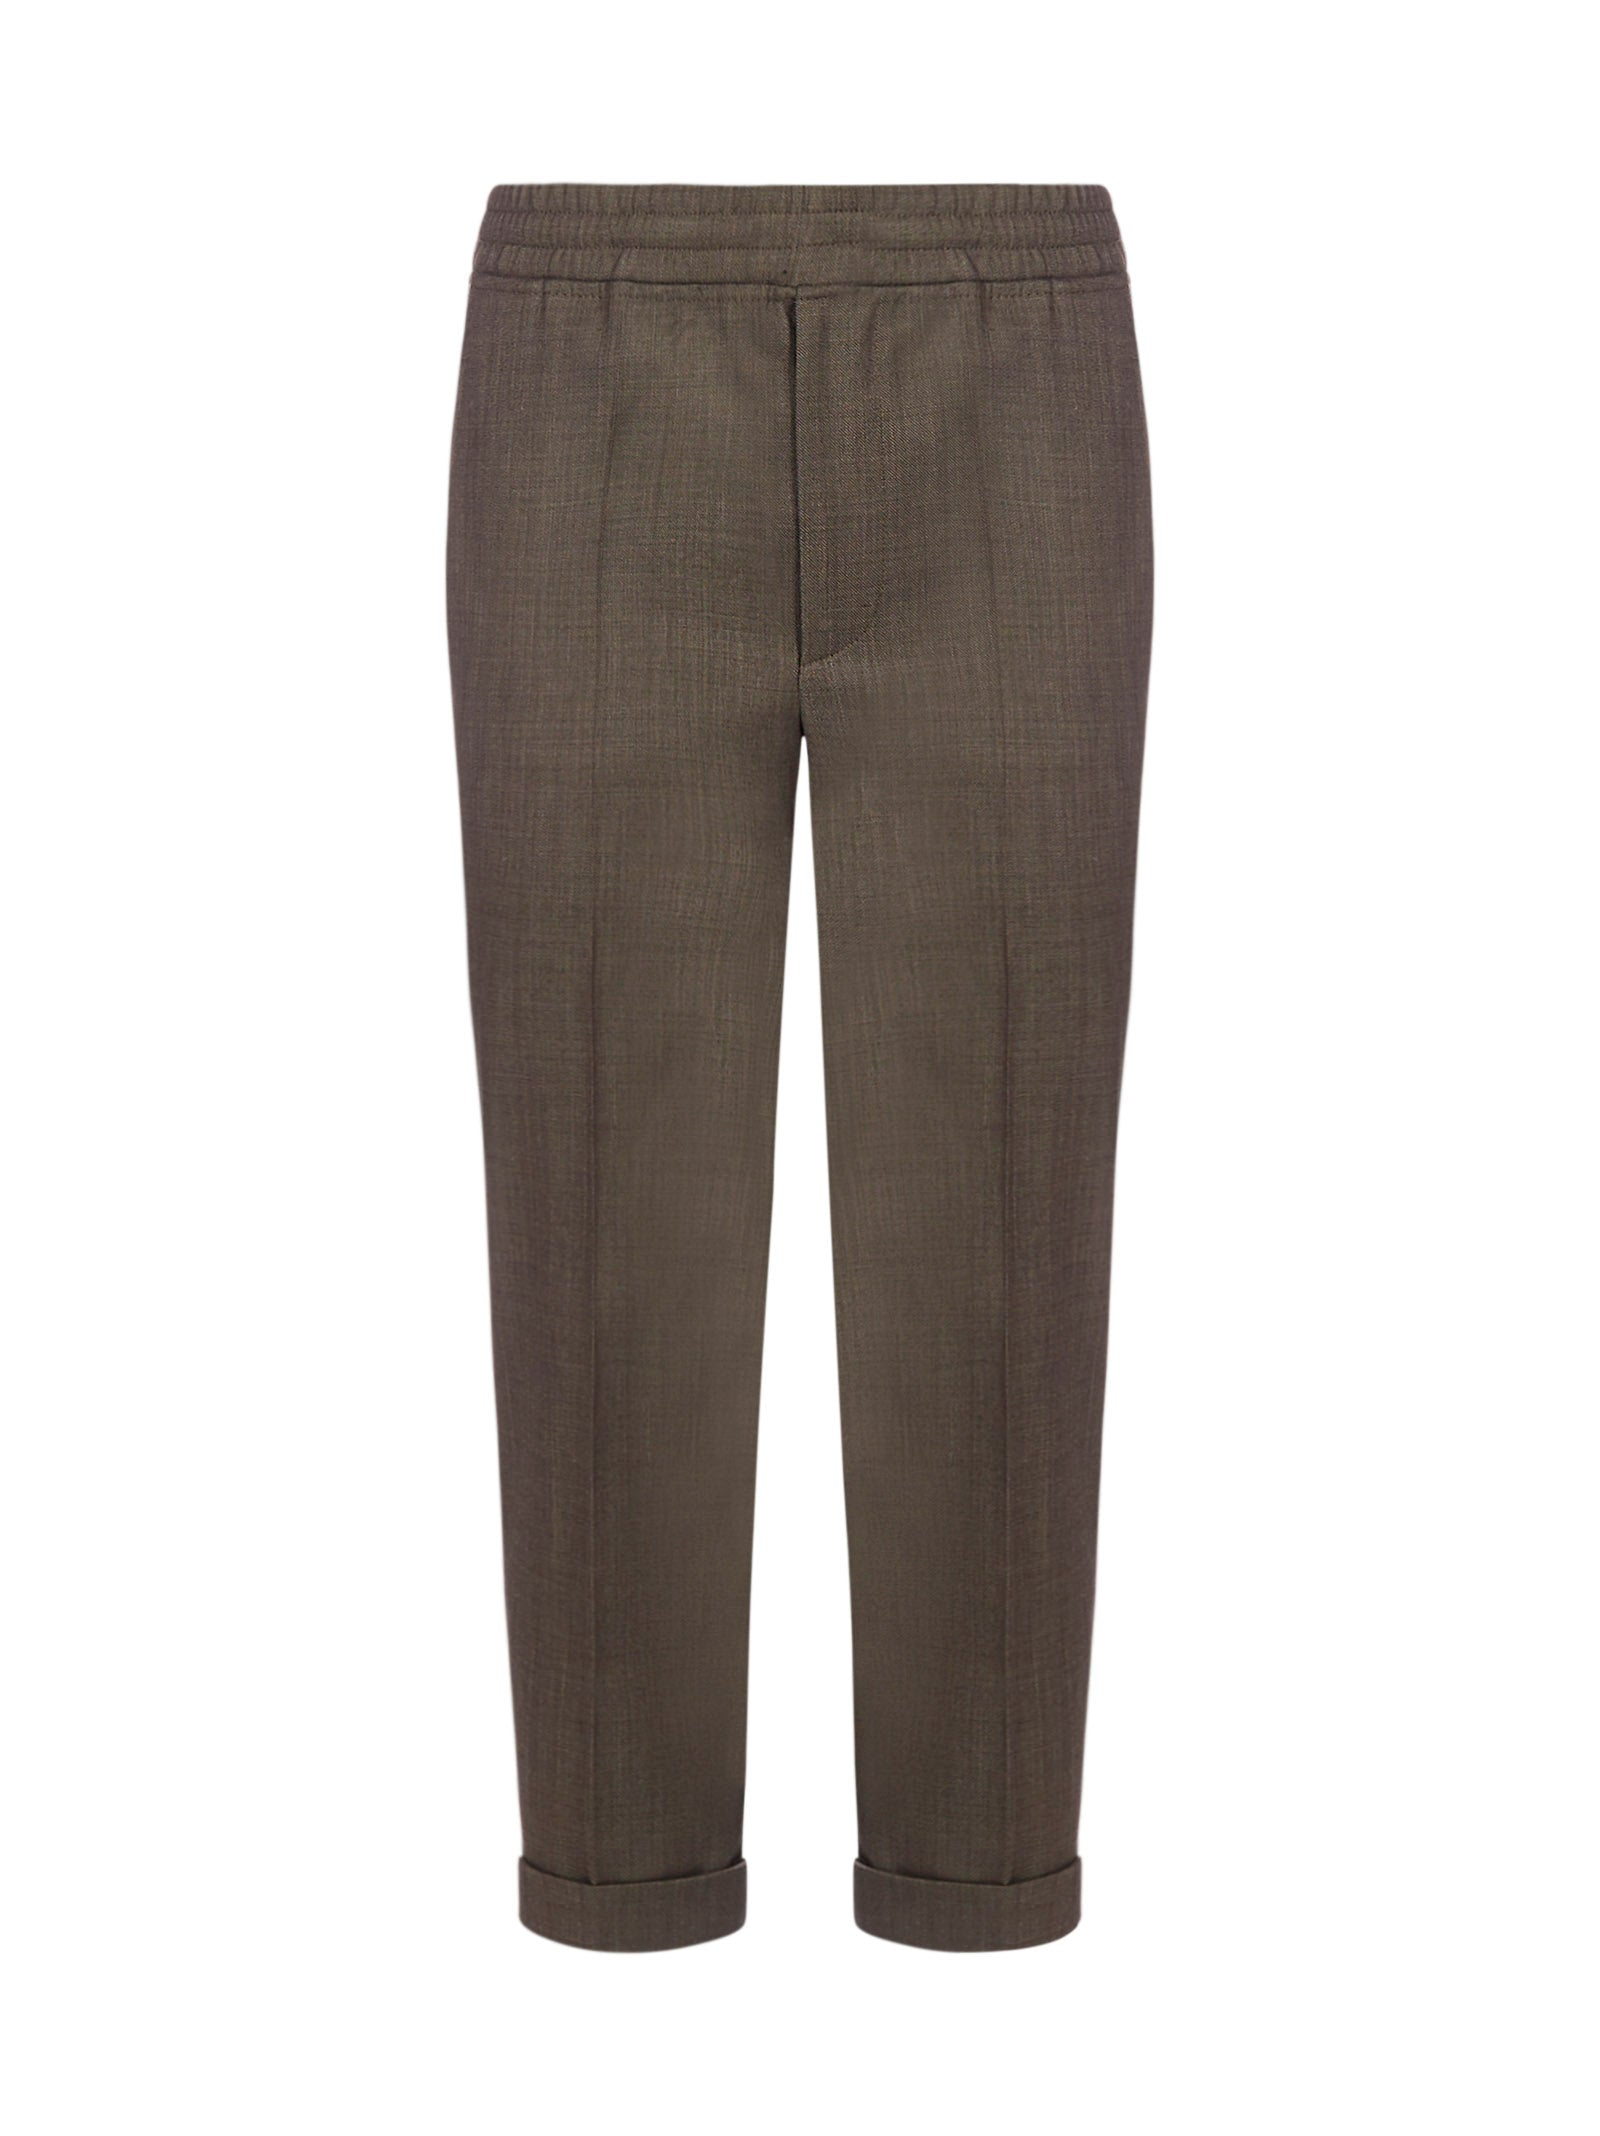 NEIL BARRETT NEIL BARRETT TAPERED SLIM FIT PANTS